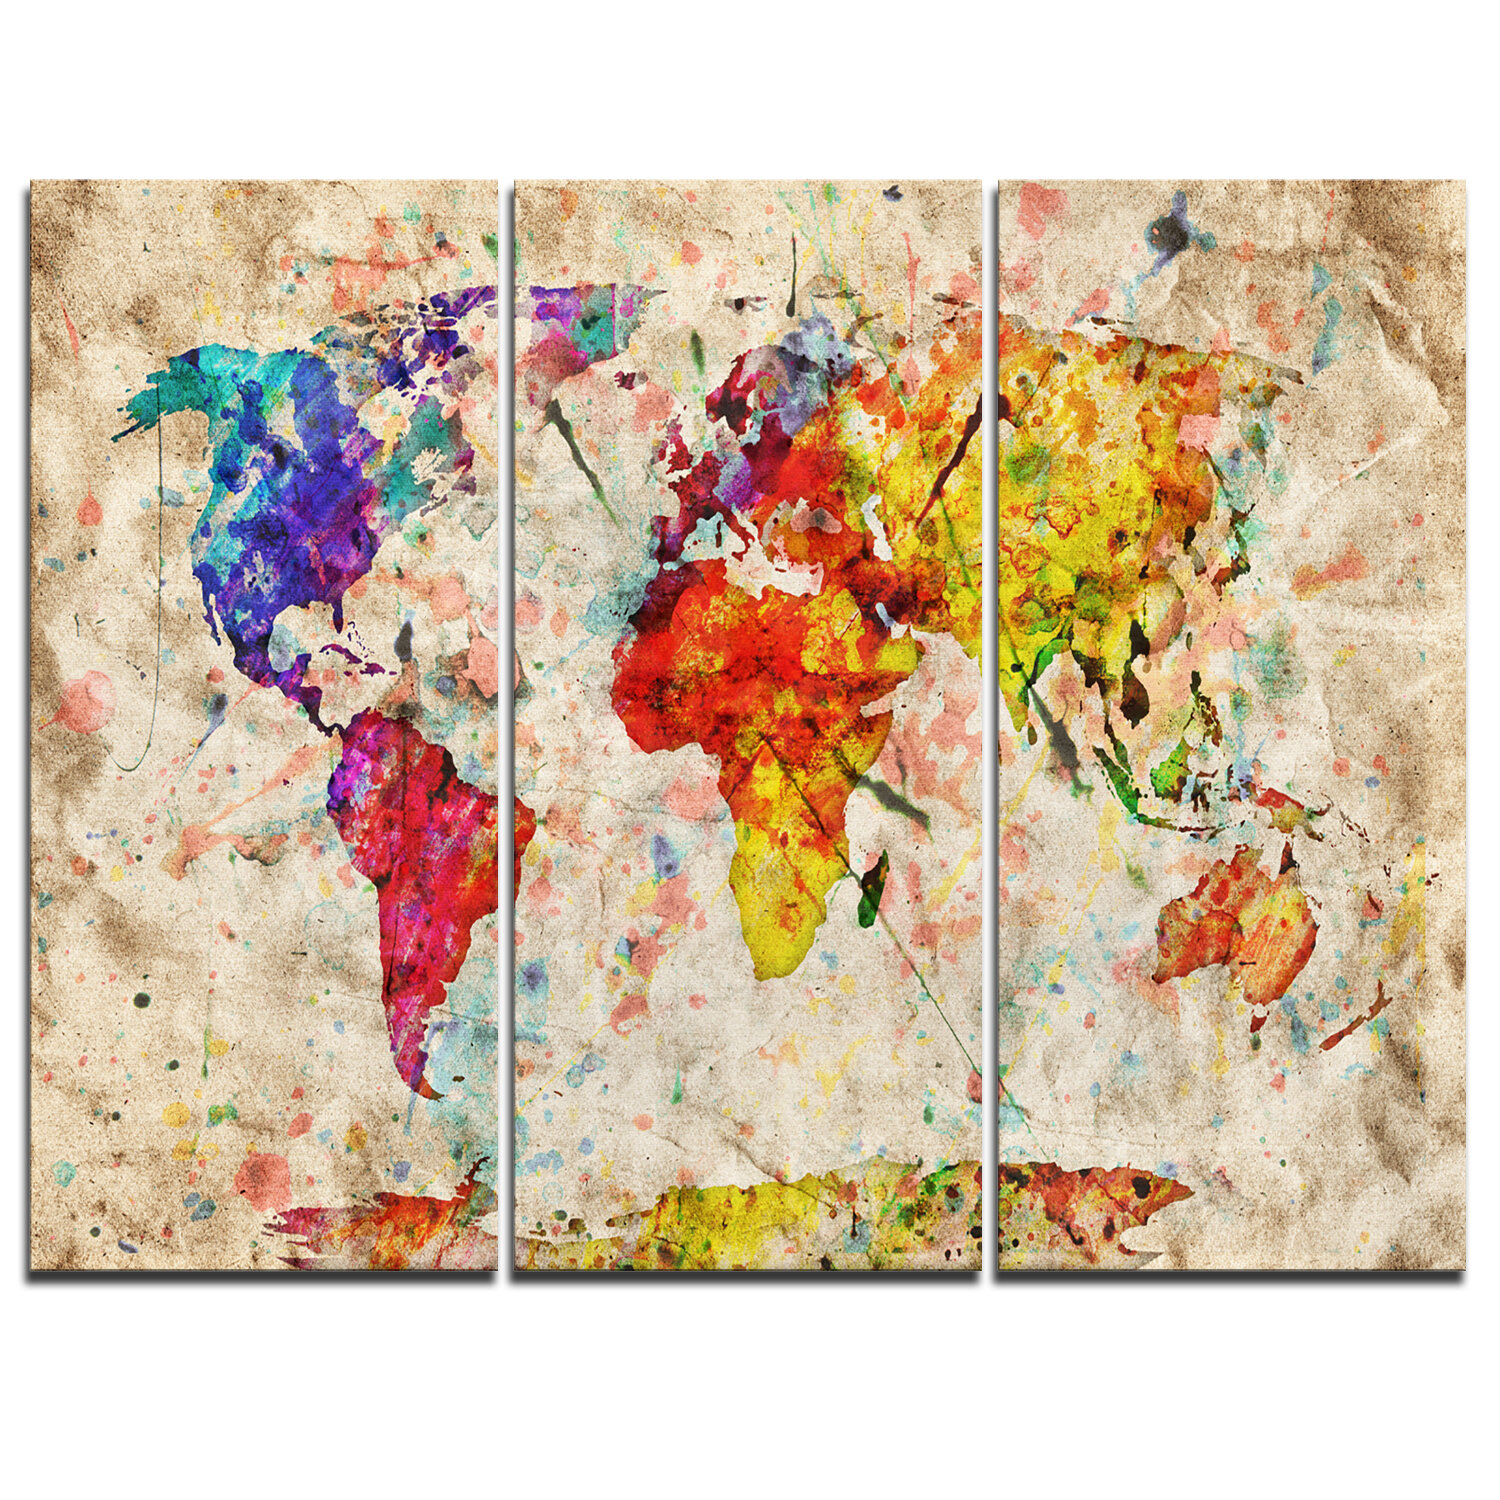 Ebern Designs Vintage World Map Watercolor 3 Piece Graphic Art On Wrapped Canvas Set Reviews Wayfair